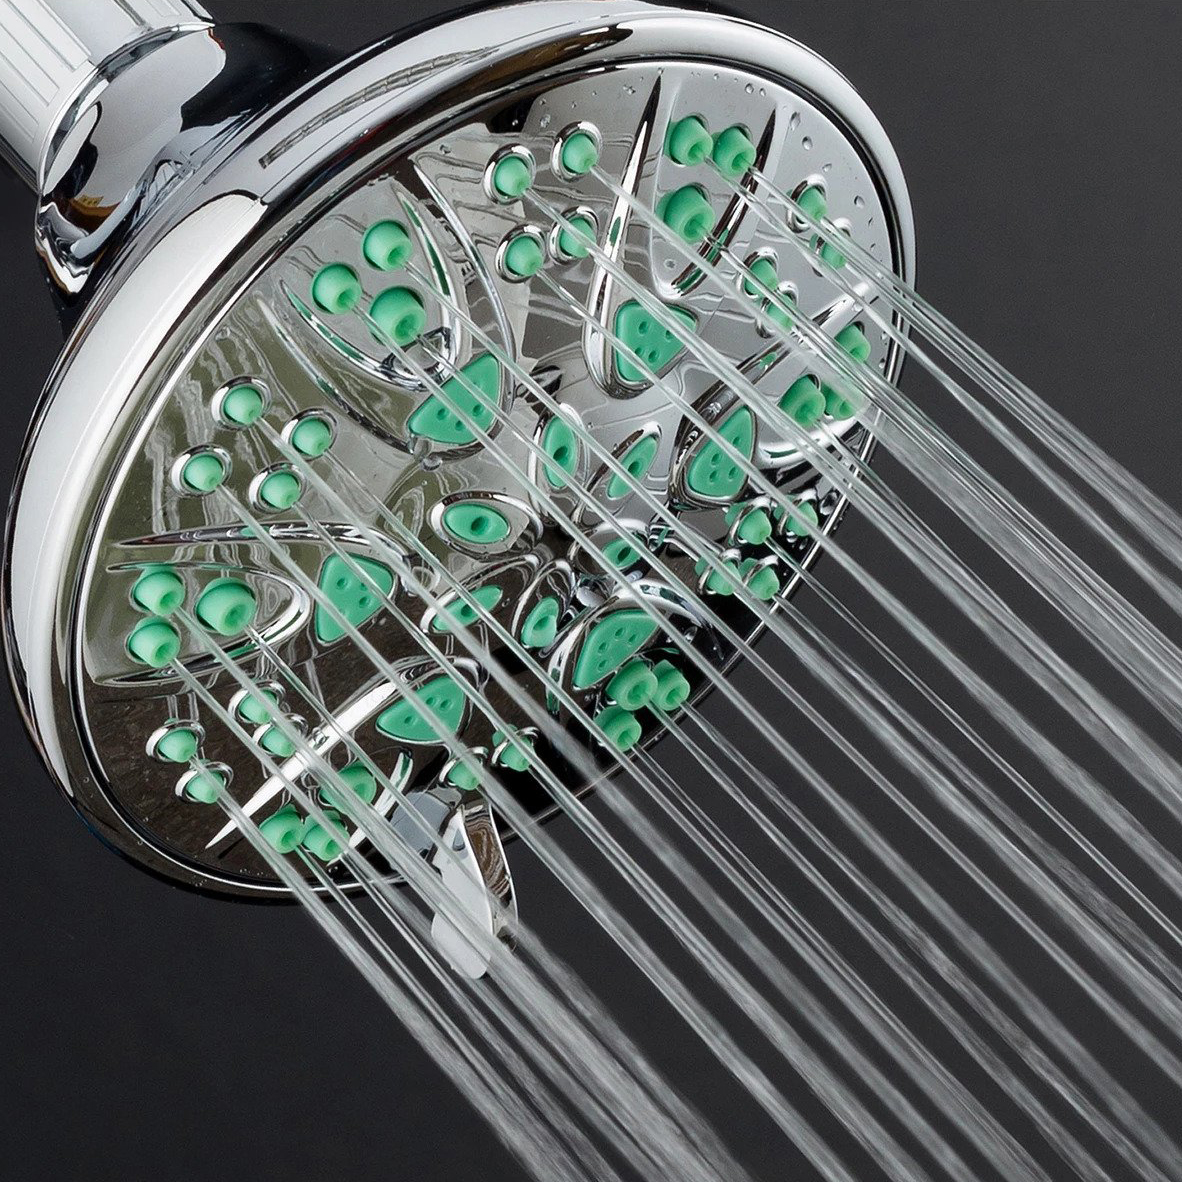 Aquadance Antimicrobial Shower Head with Coral Green Jets